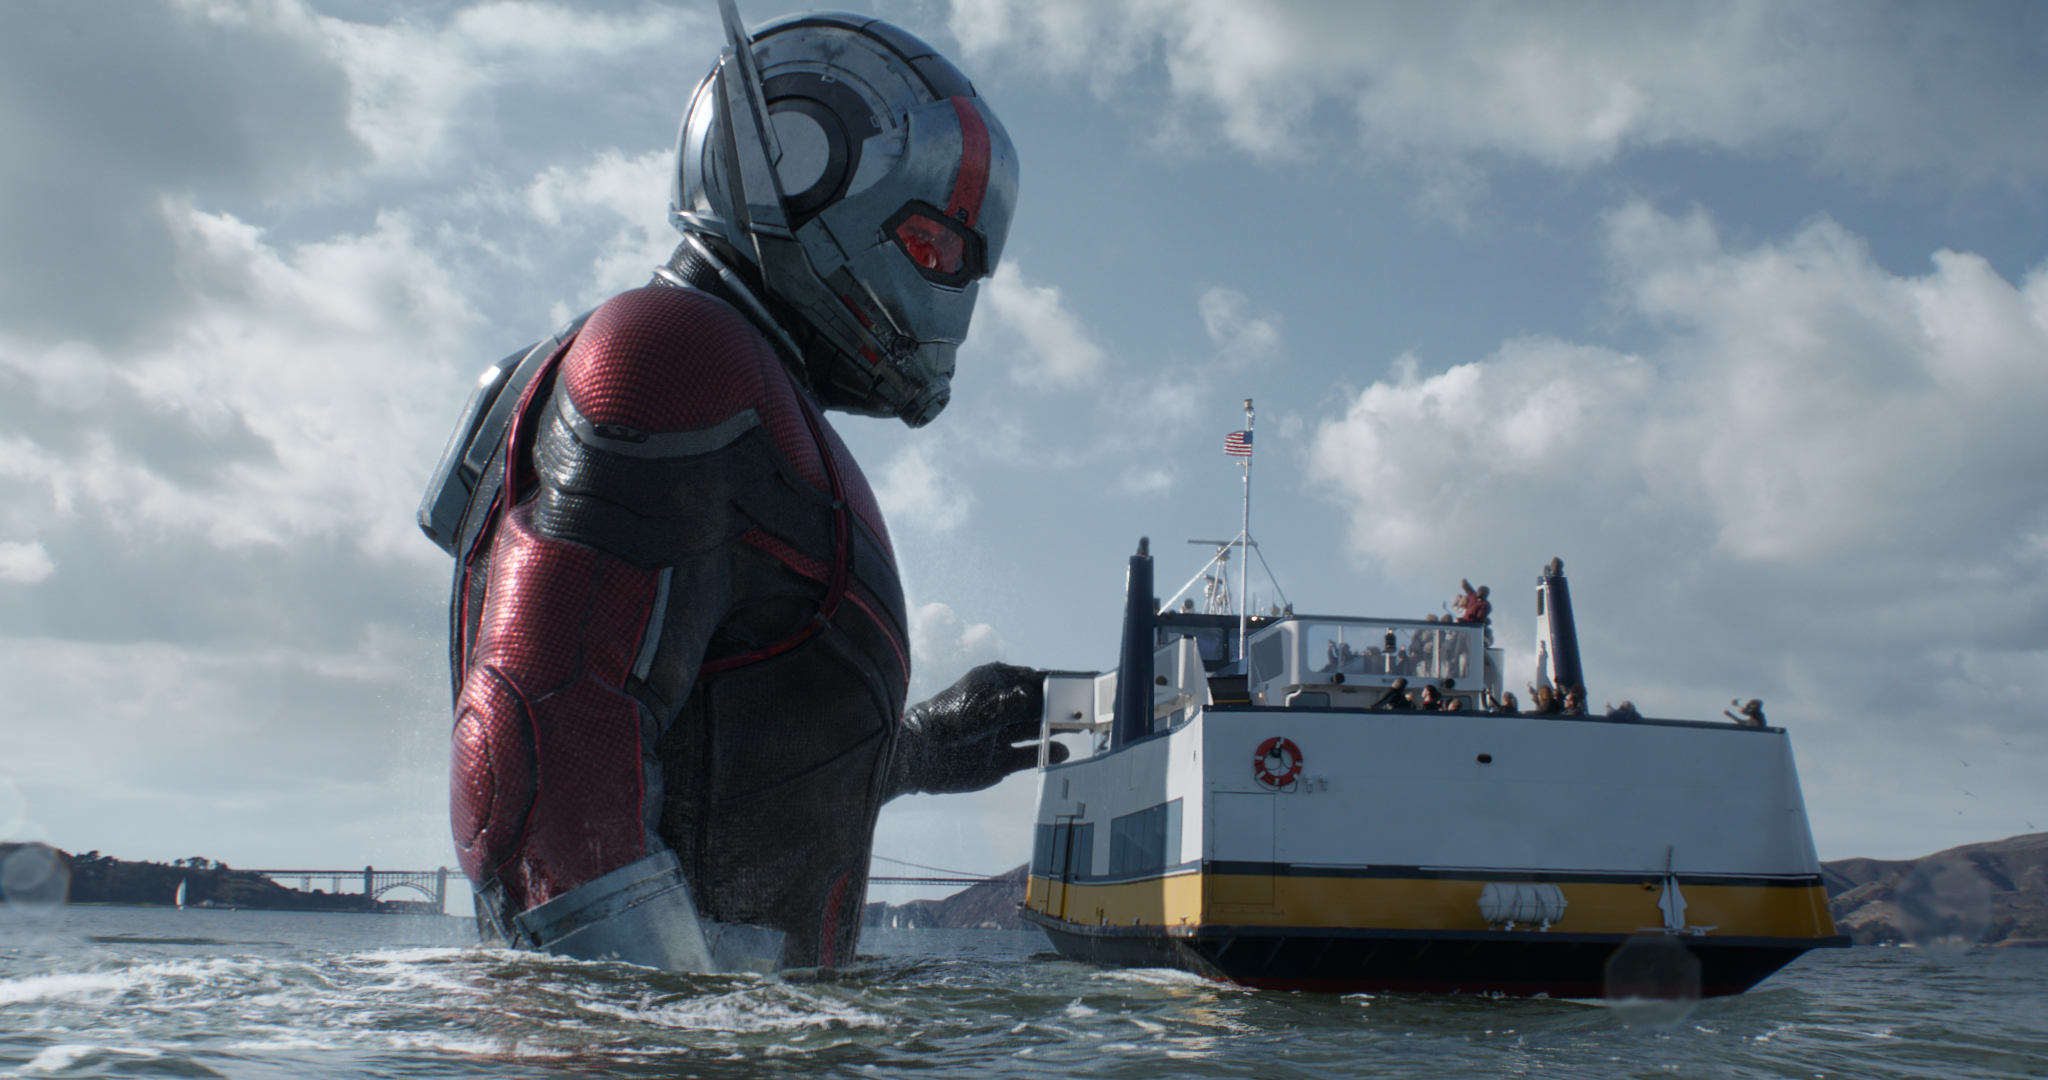 Ant-Man And The Wasp' Could Fly As Low As $69M And As High As $80M In Opening – Deadline